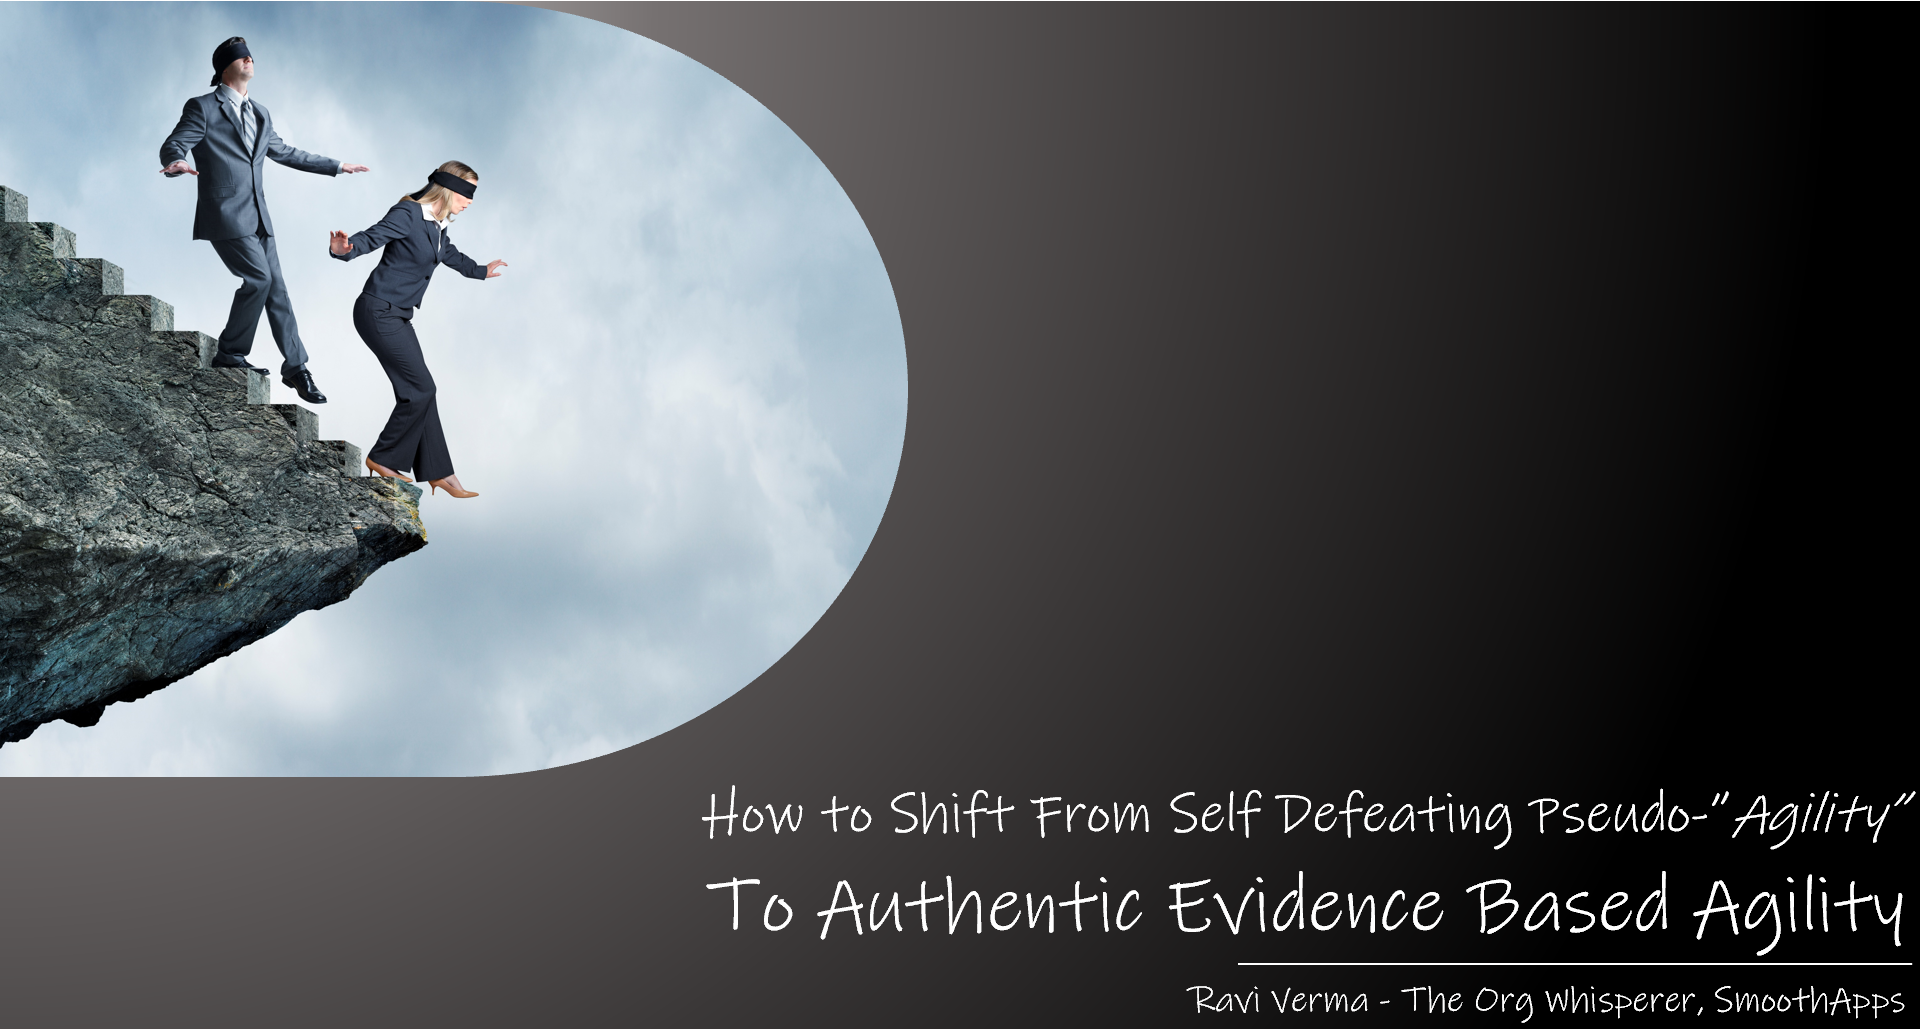 How To Shift From Self-Defeating Pseudo Agility To Authentic Evidence Based Agility